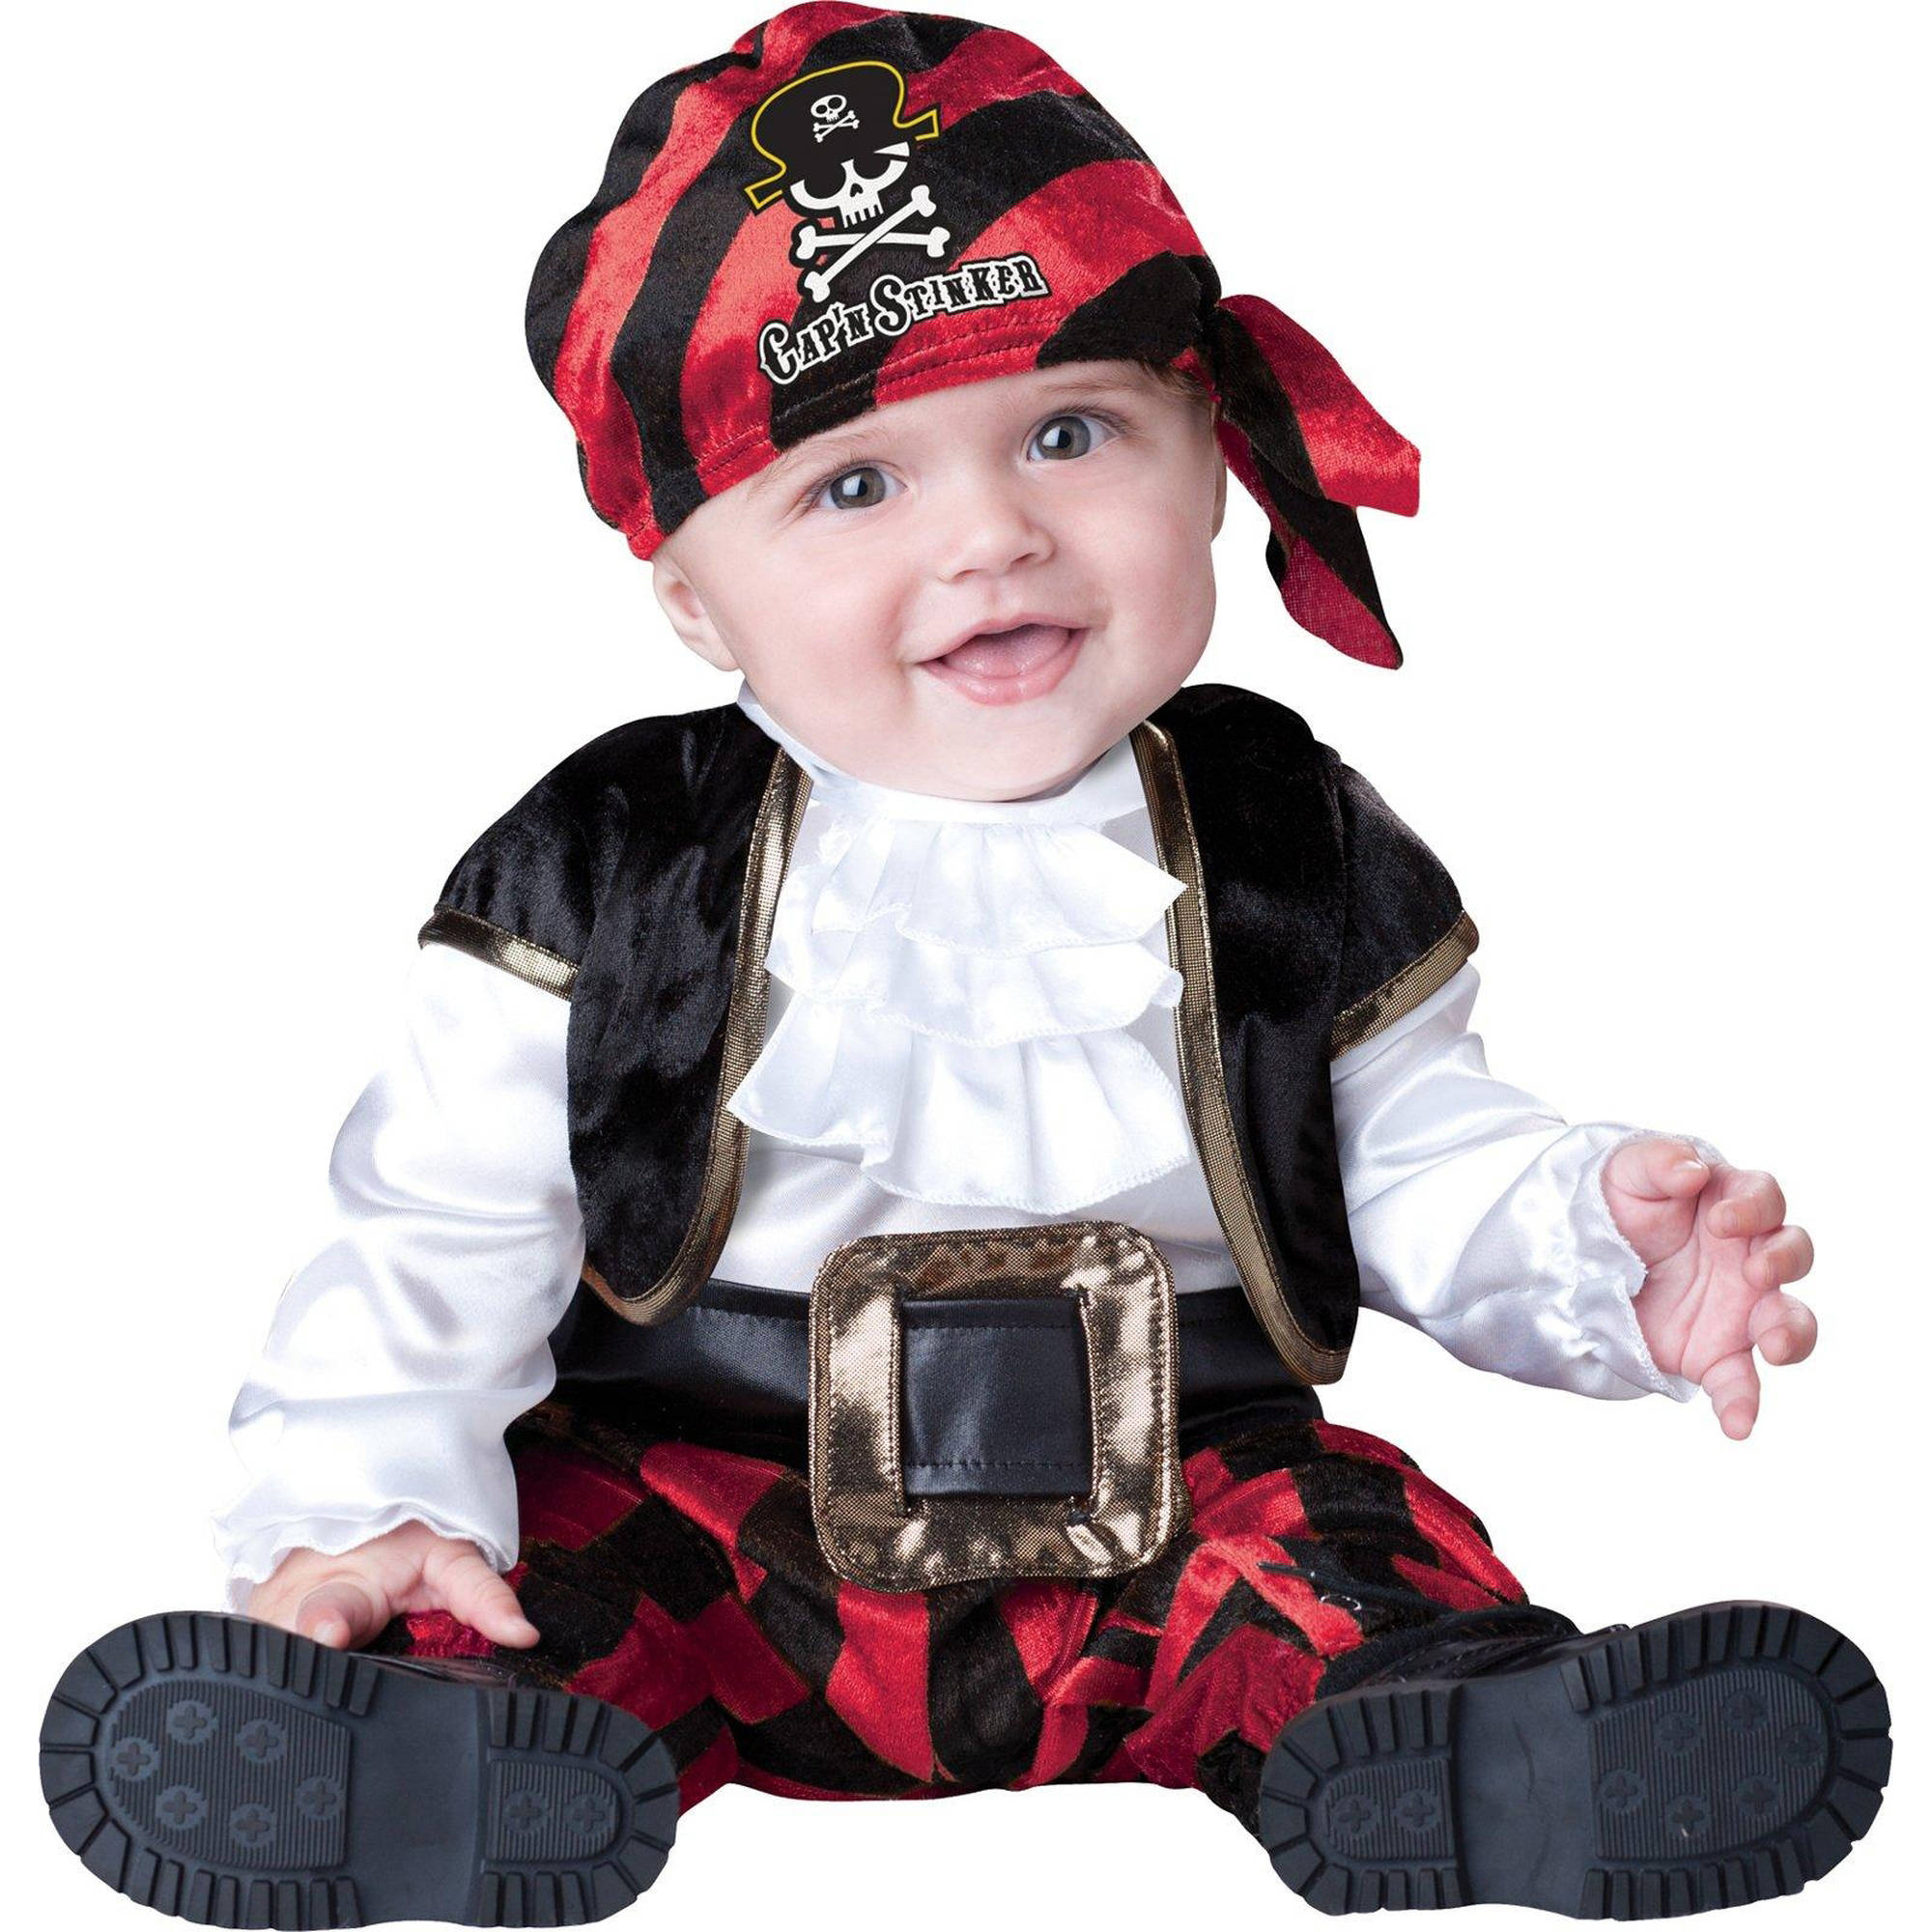 Cap'n Stinker Pirate Infant Halloween Costume, 6-12 Months by Generic